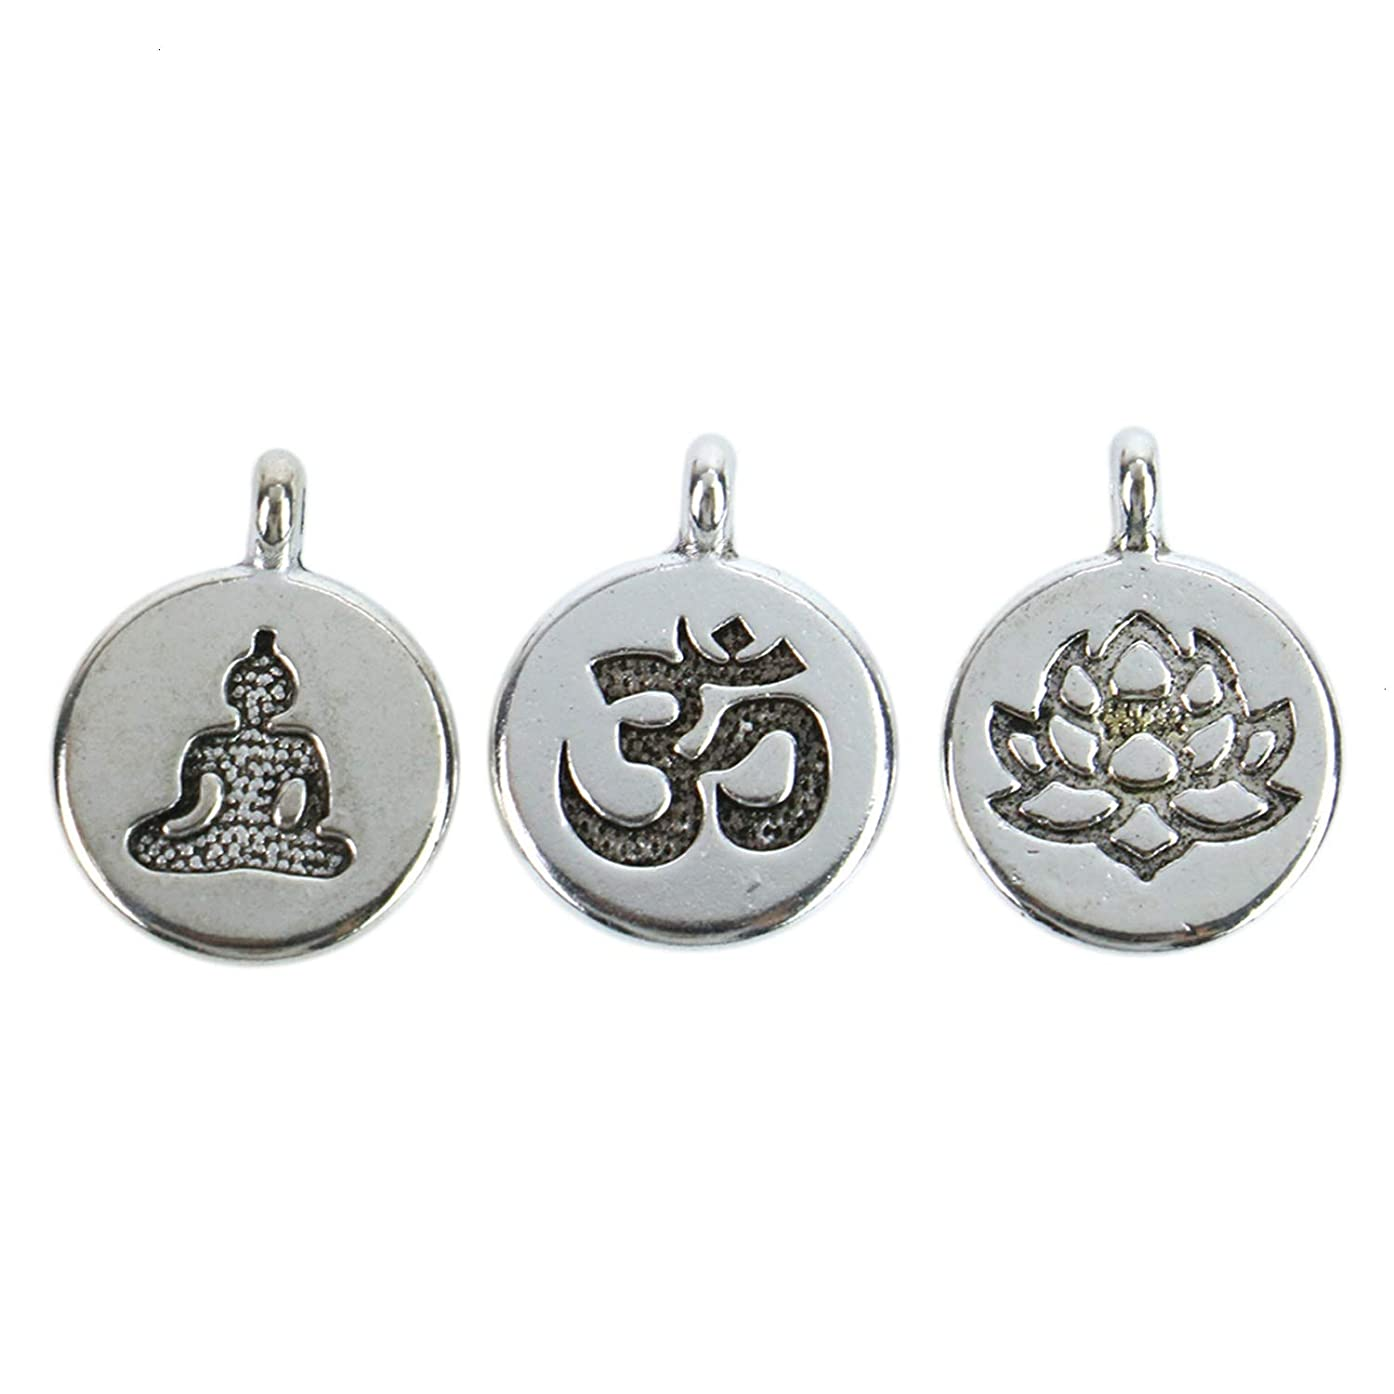 Monrocco 30 Pack Silver Yoga Charms Set Ohm Om Charm Lotus Flower Charms Meditating Buddha Charms Lots for Bracelets Jewelry Making